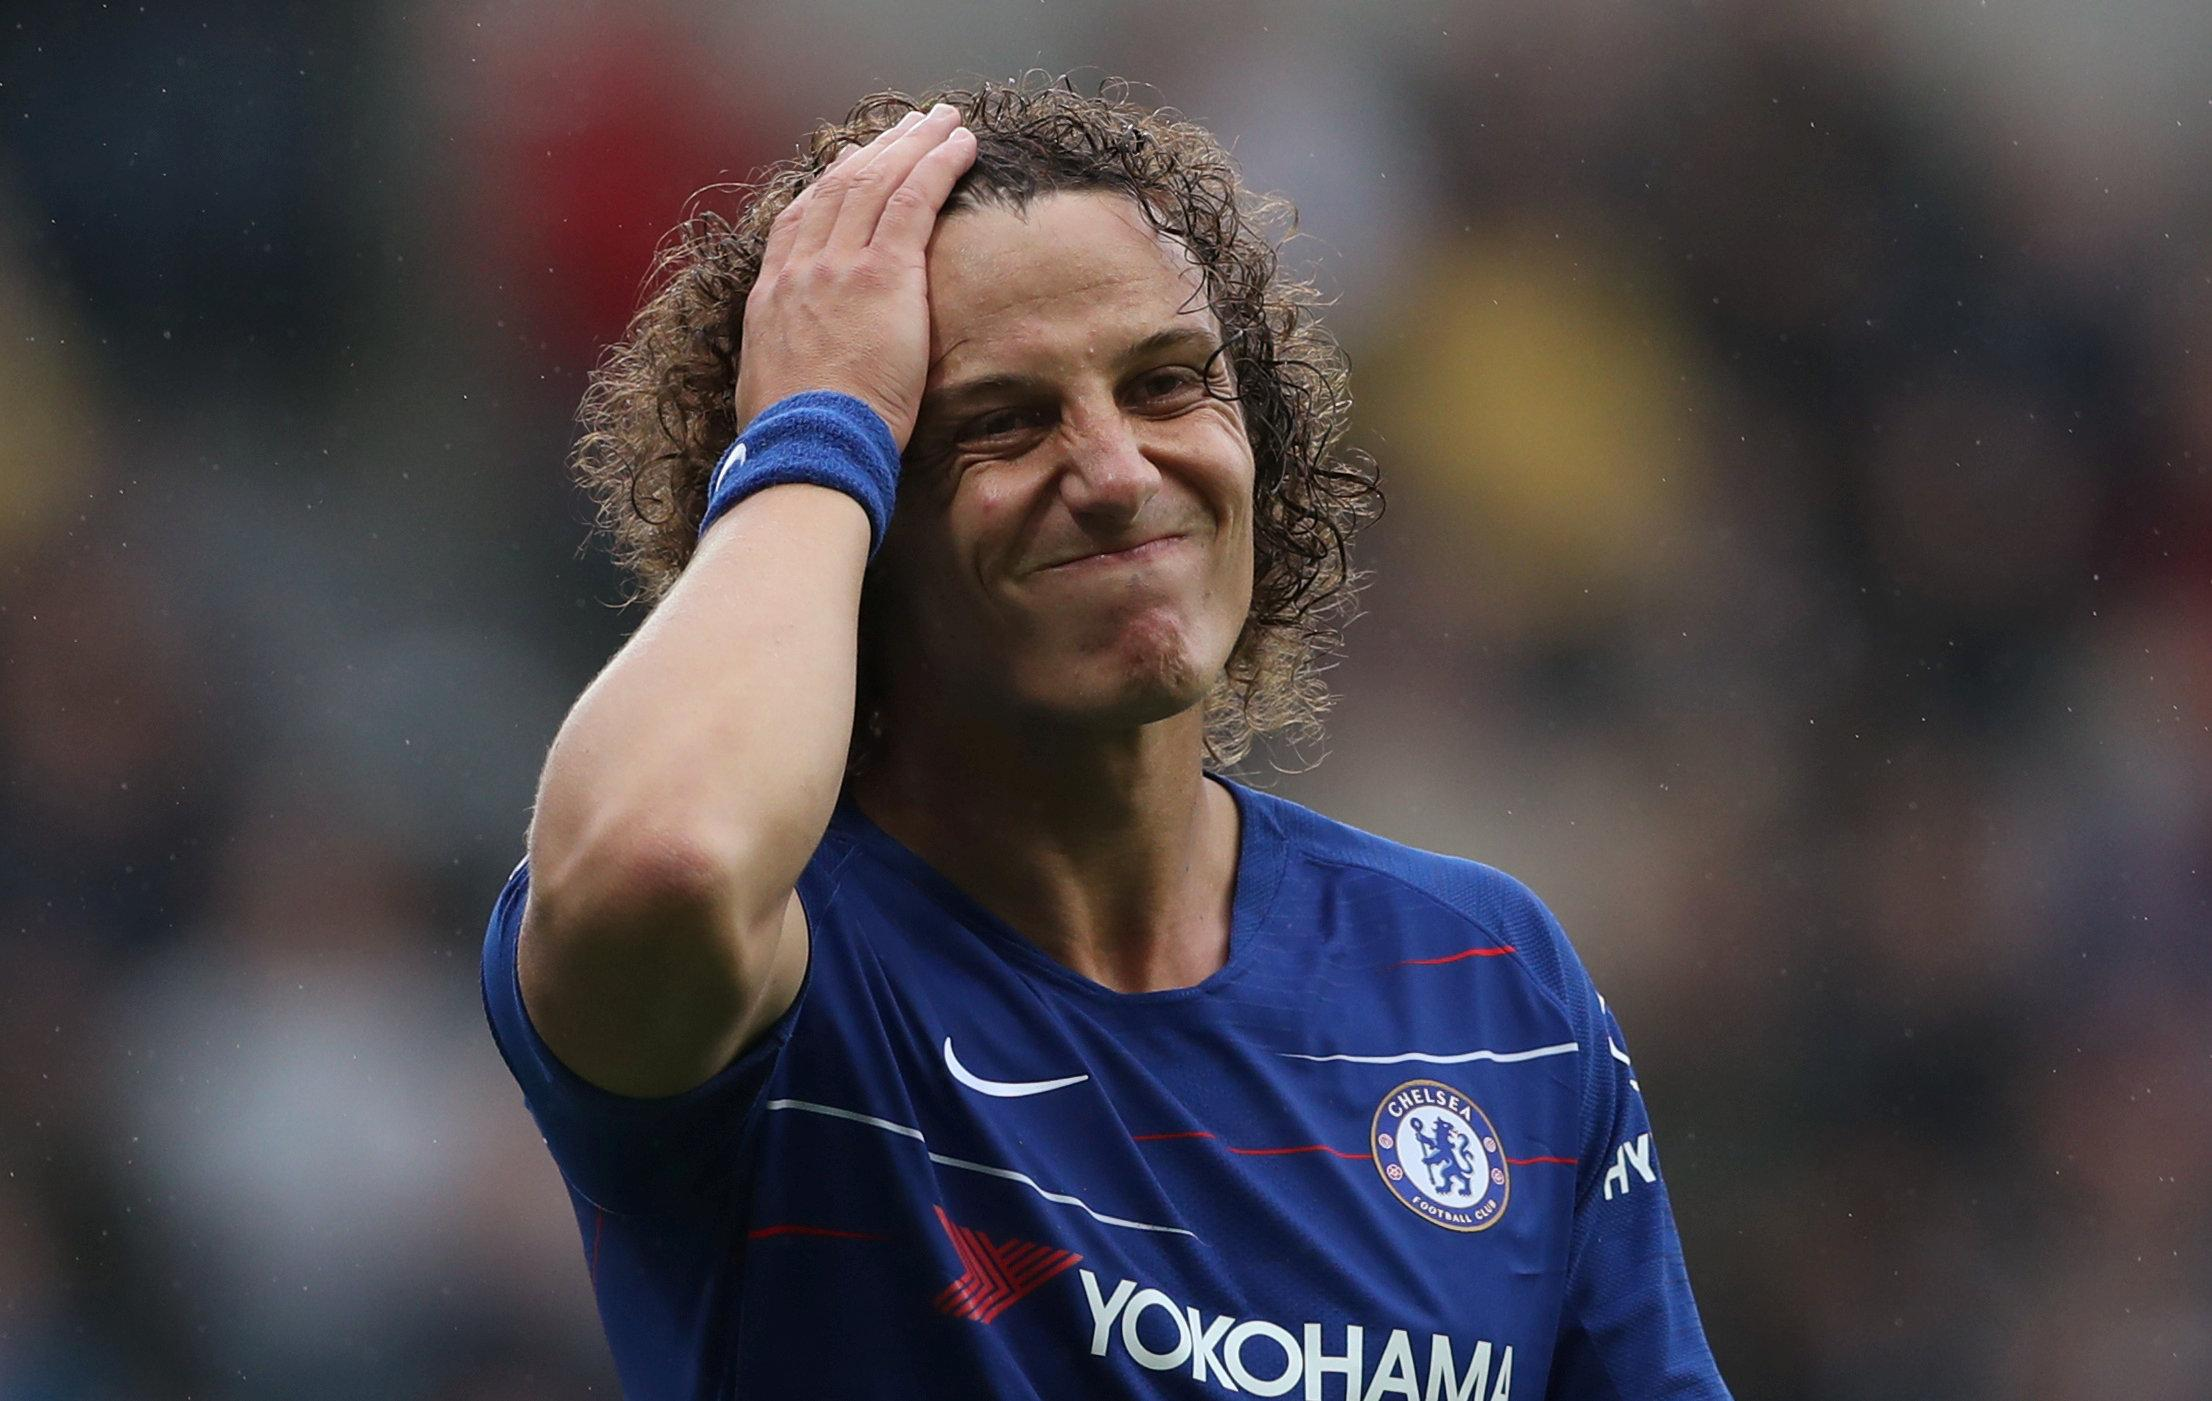 Brazil ace David Luiz has less than 12 months left on his current deal